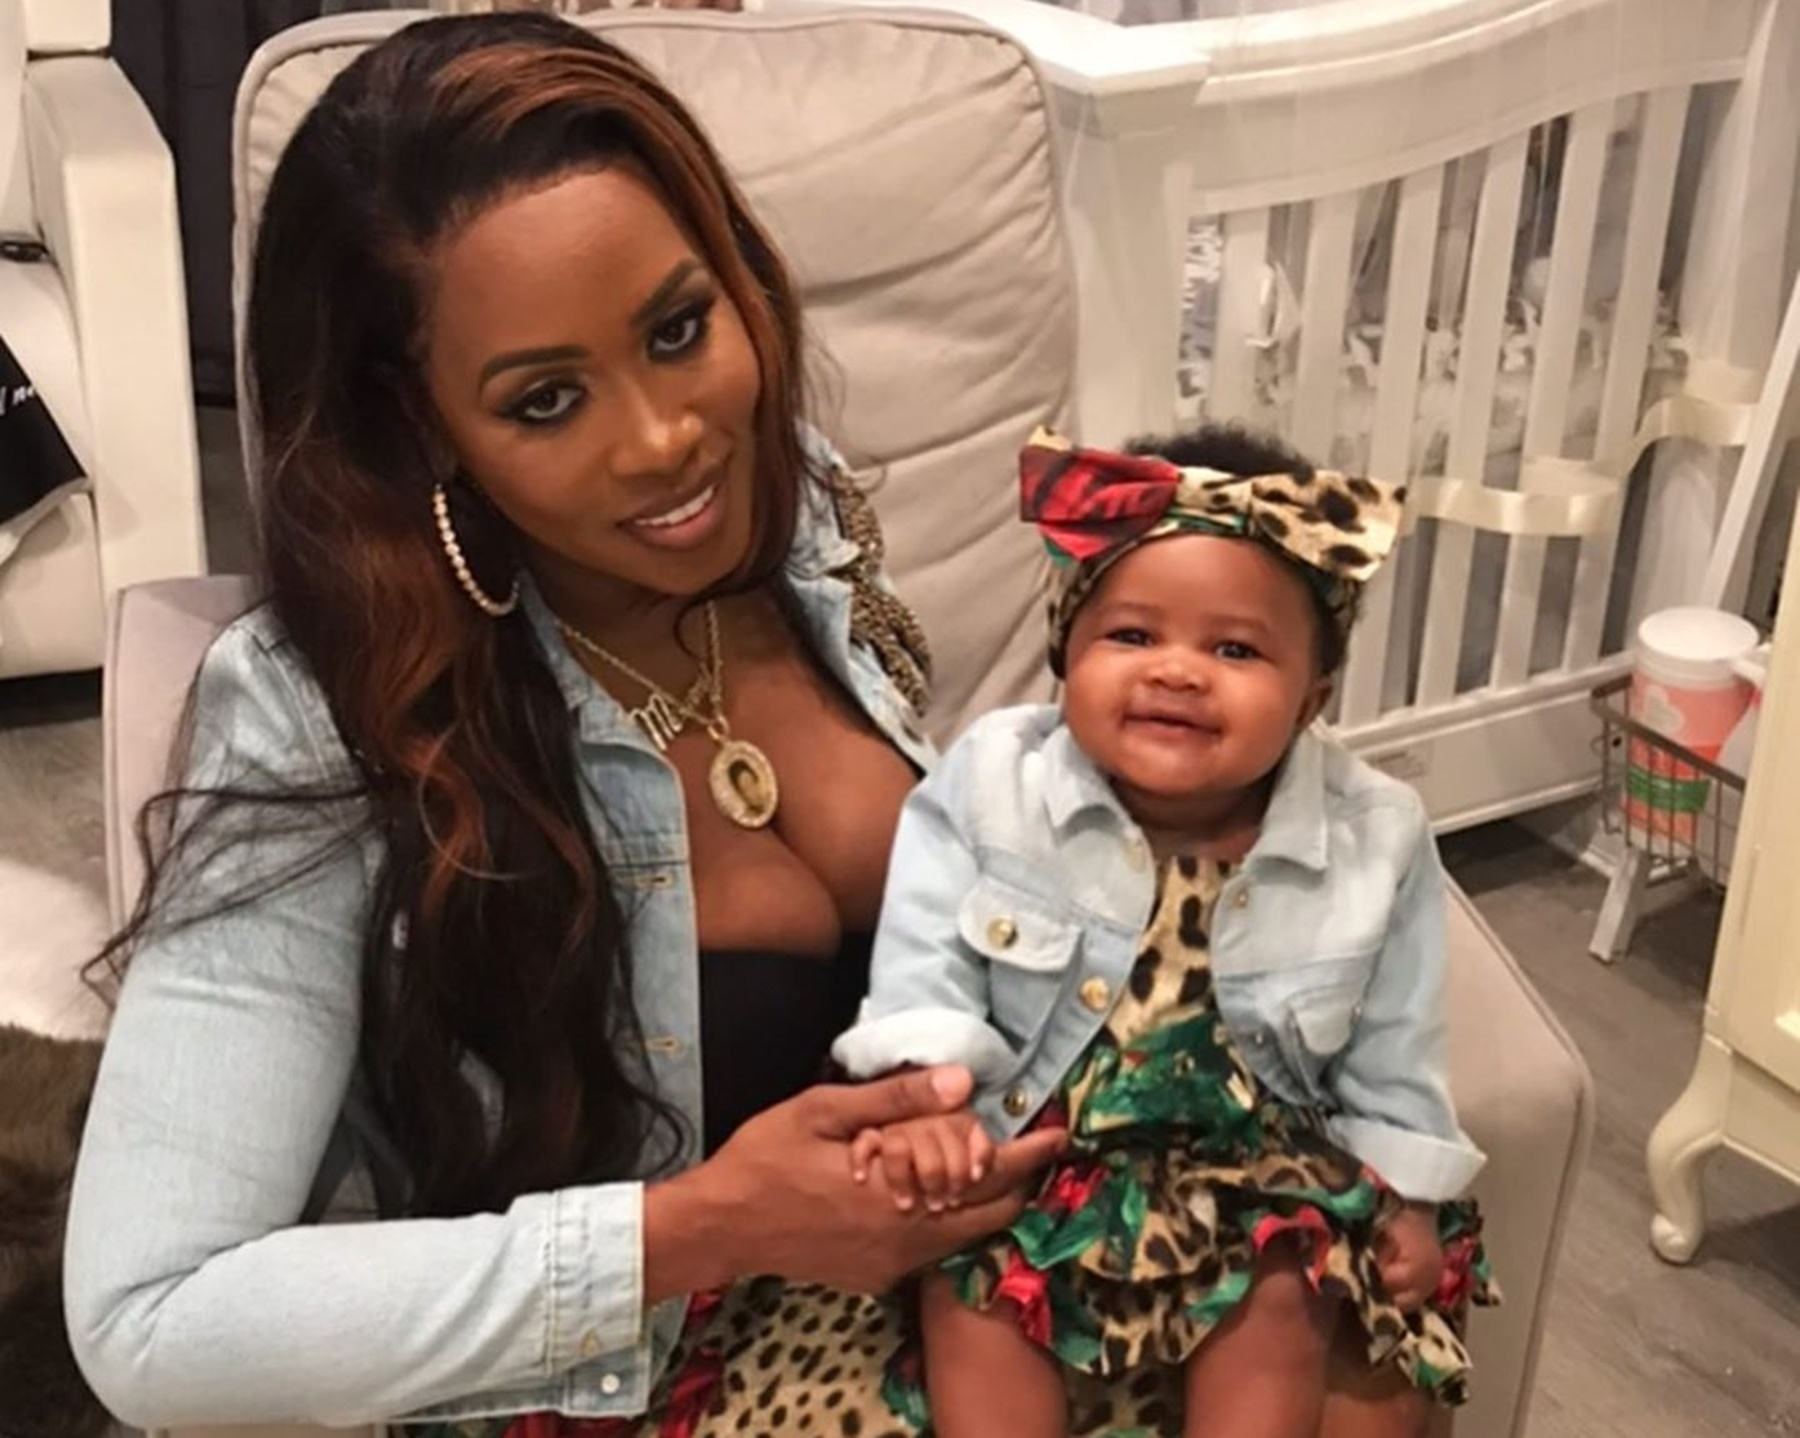 Remy Ma Shows Off Her Gorgeous Baby Mackie While She's Washing Her Hair And Tamar Braxton Might Get Baby Fever Watching The Pics